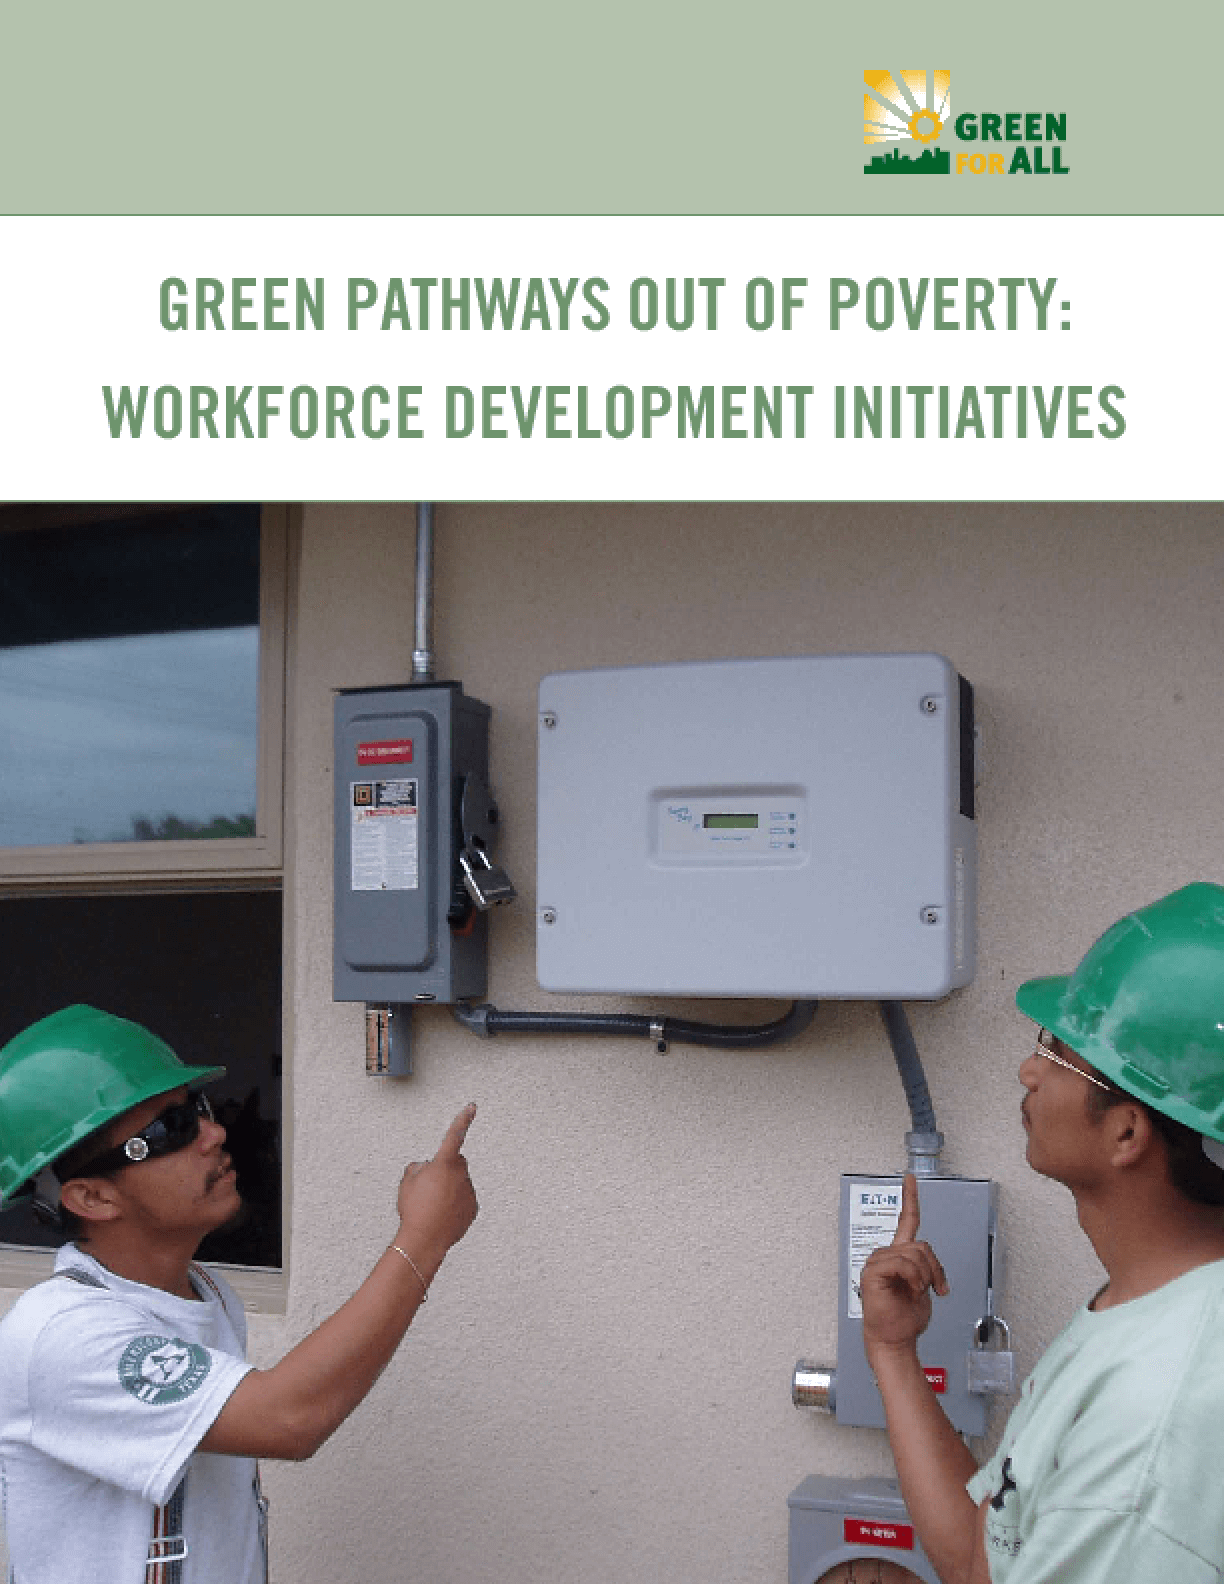 Green Pathways Out of Poverty: Workforce Development Initiatives